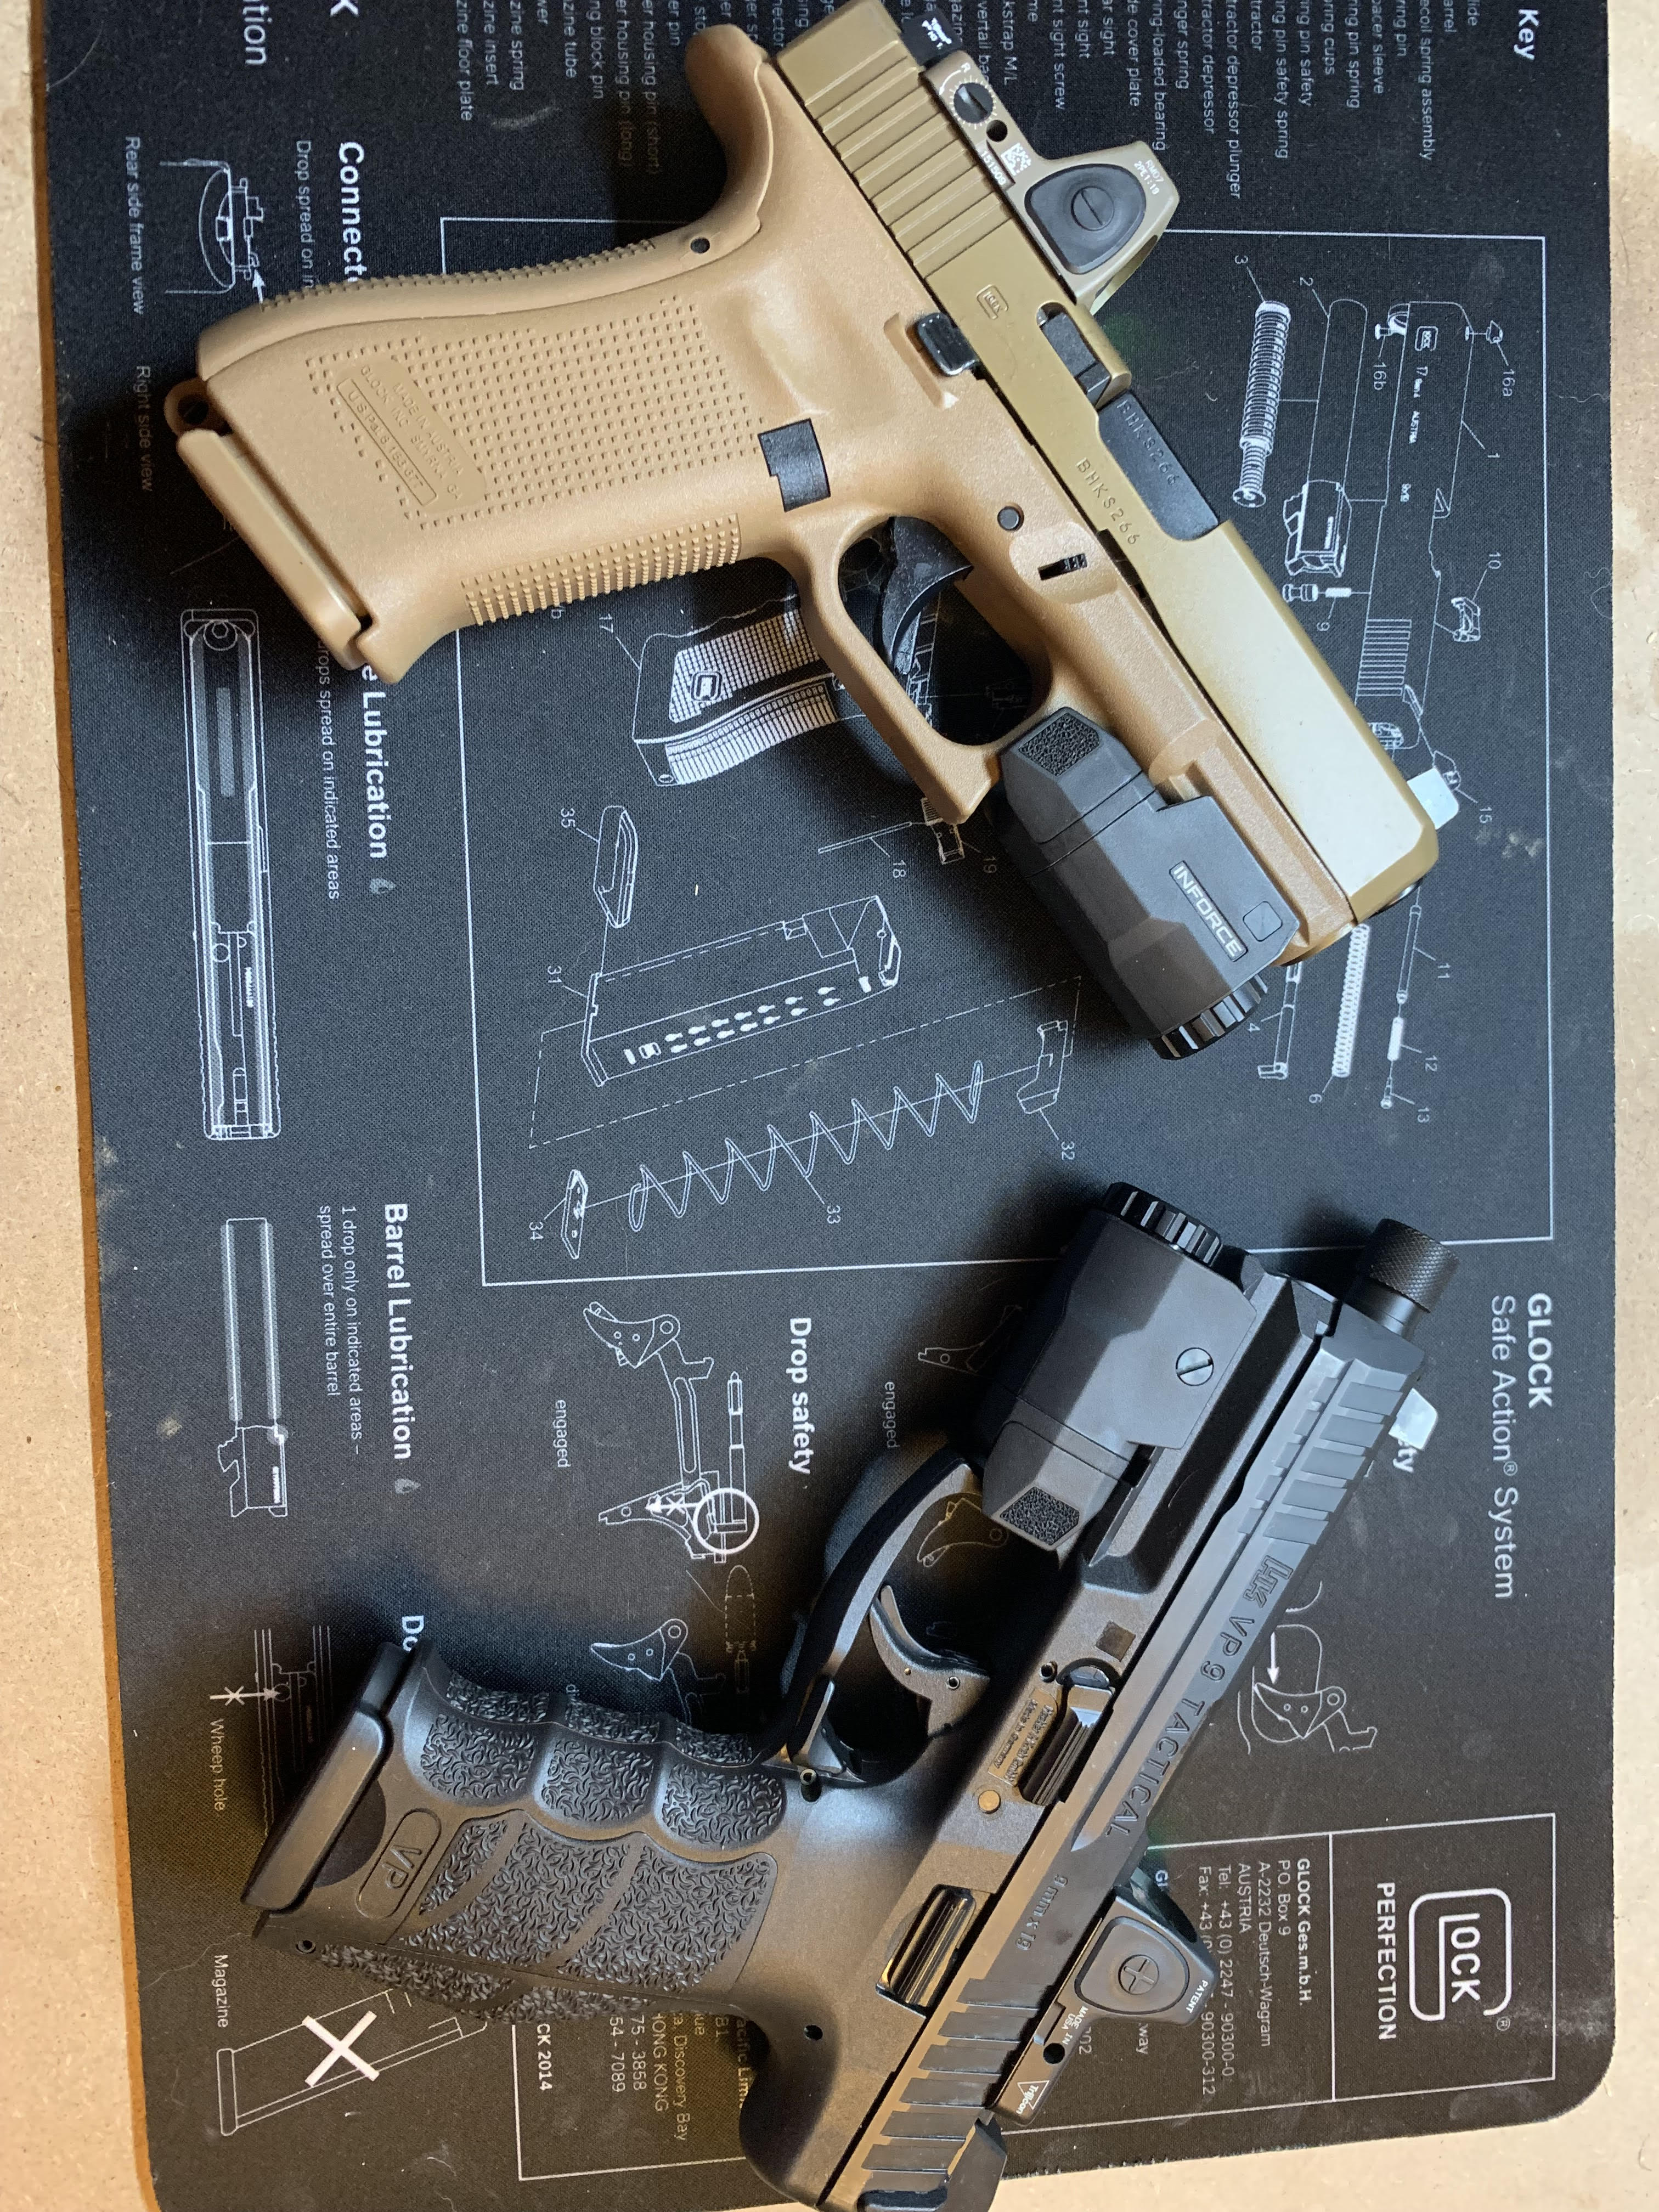 Show off your vp40 and vp9 with light.-0.jpg